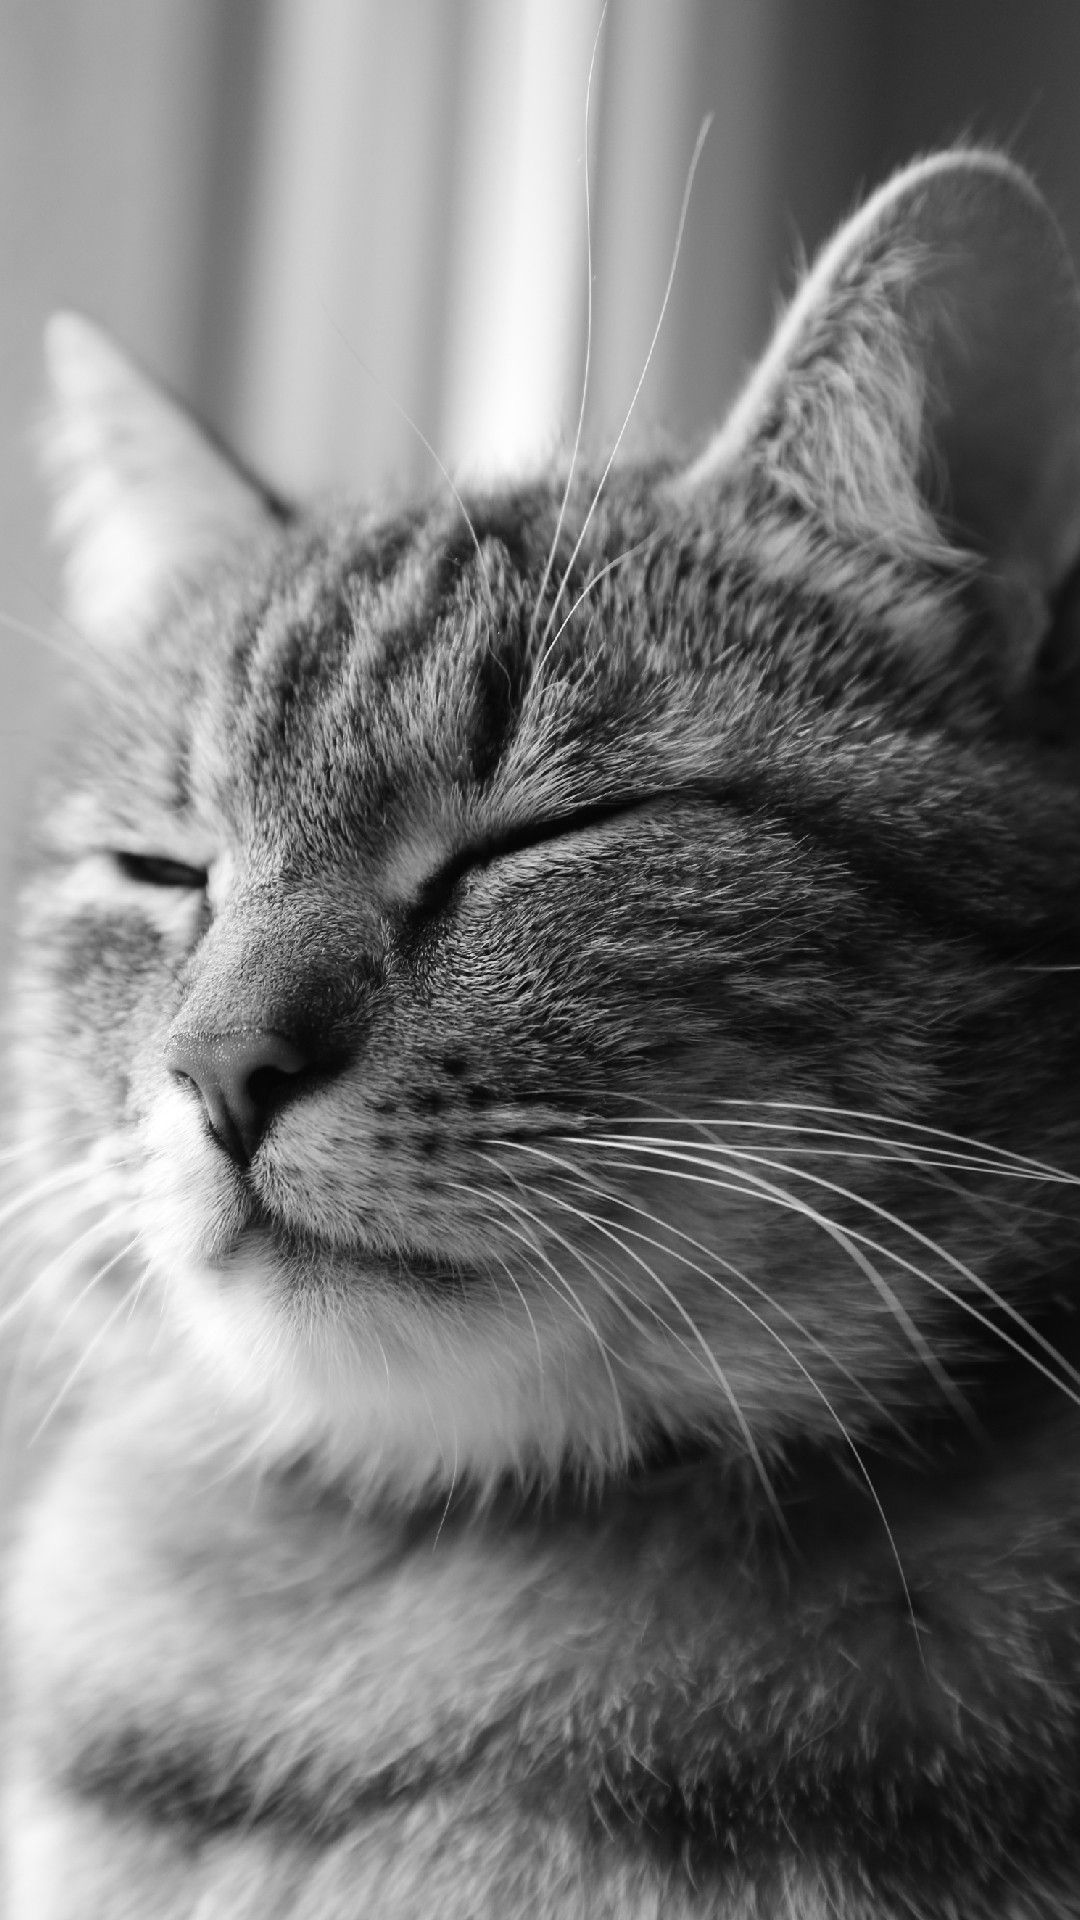 Sleepy Cat Phone Wallpaper Lockscreen Hd 4k Android Ios Iphone